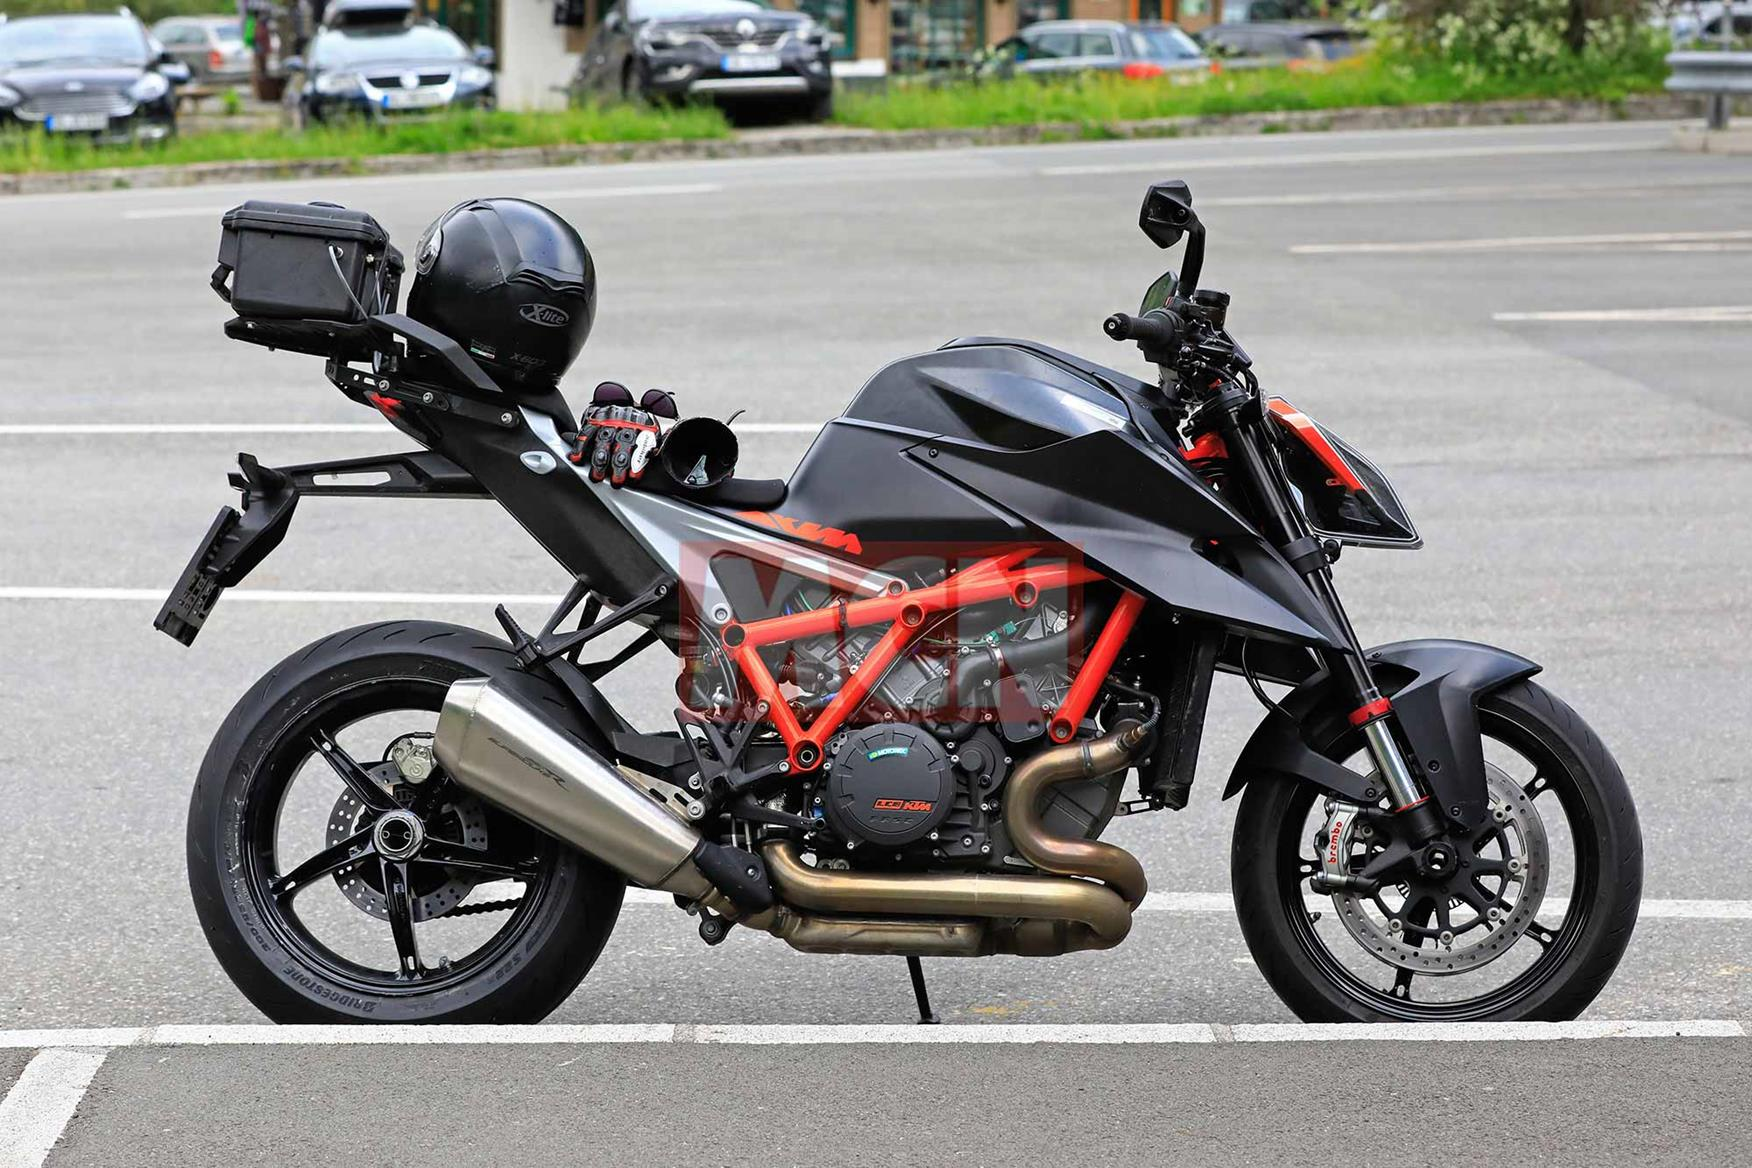 A side on view of the updated KTM 1290 Super Duke R